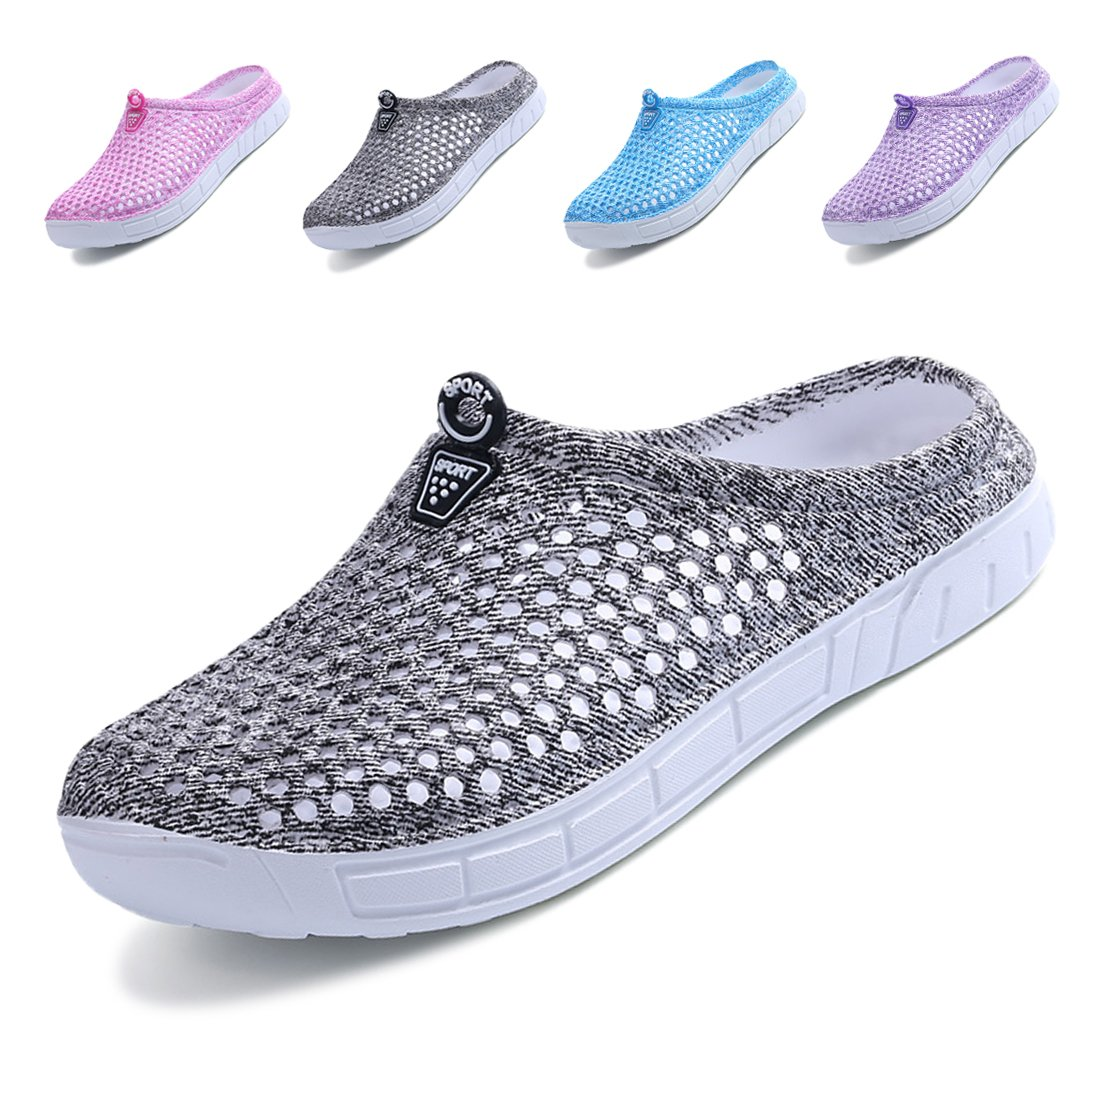 Lewhosy Women's Garden Clogs Shoes Slippers Sandals Quick Drying Lightweight Breathable(38/Gray)